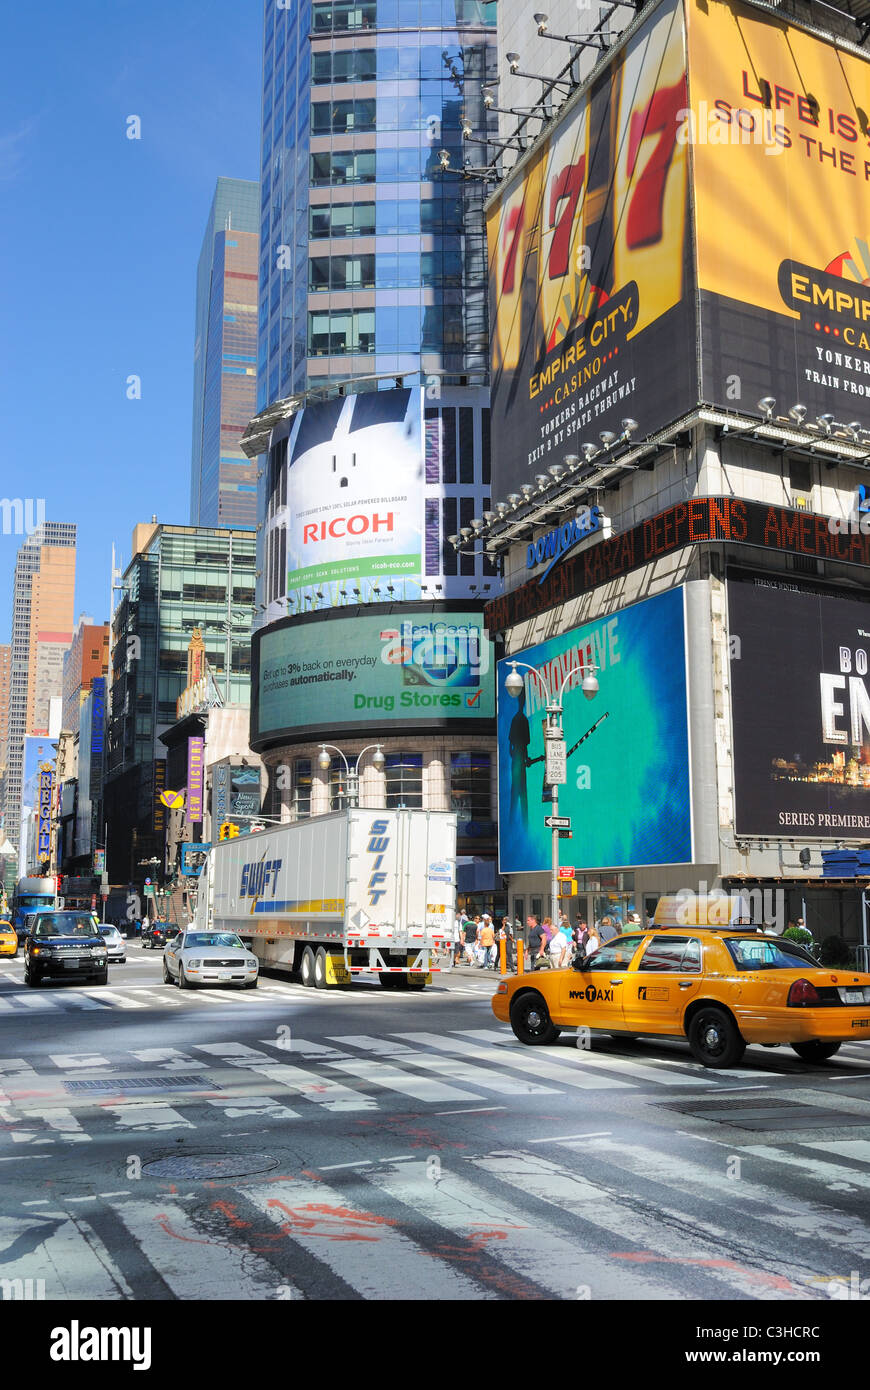 Intersection of 42nd Street and Broadway in famous New York City. - Stock Image